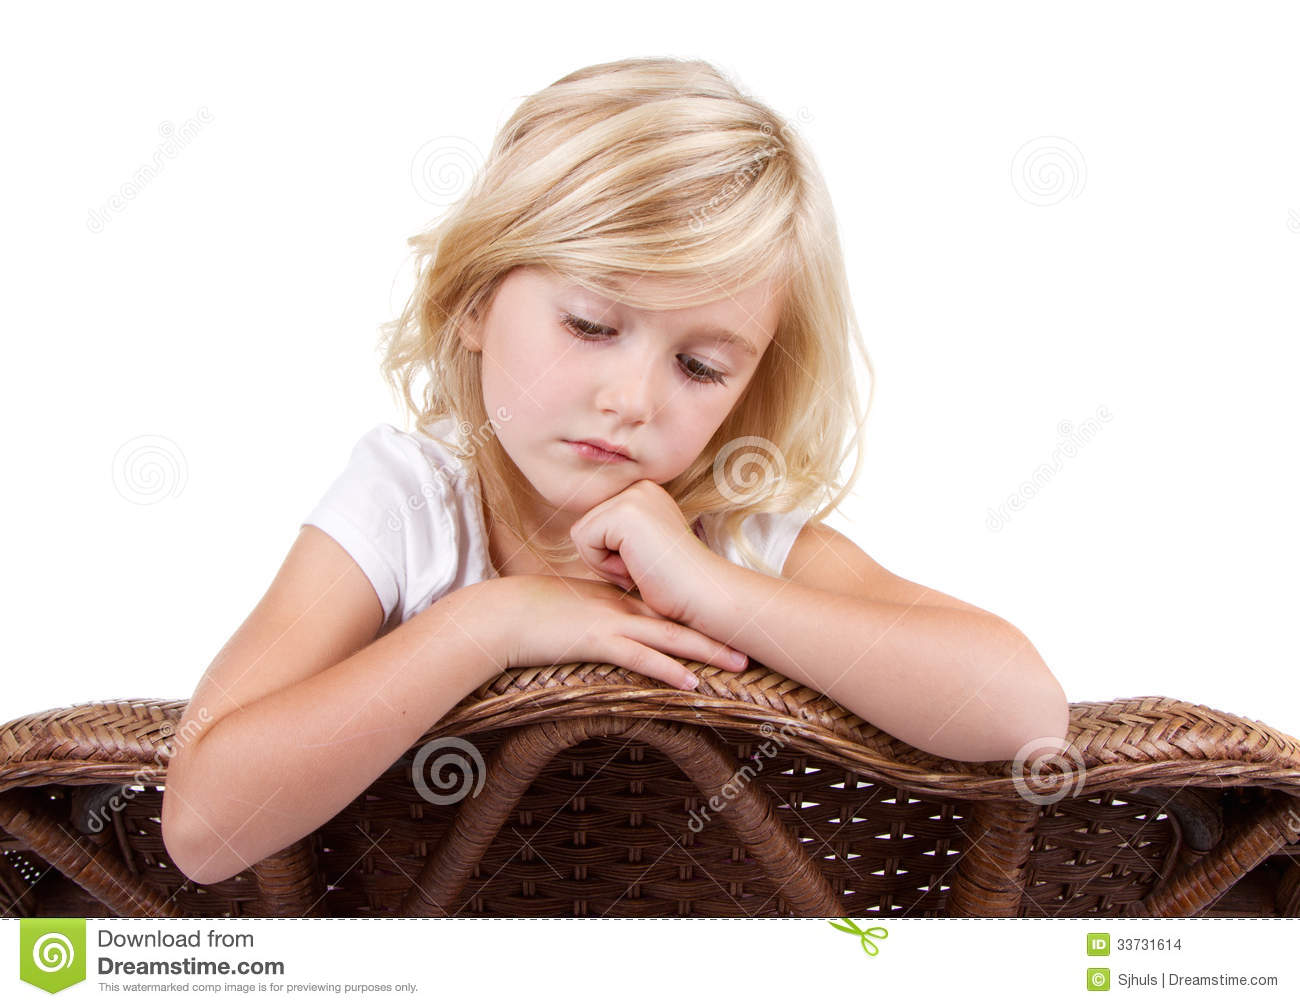 Sad Girl Sitting In Chair Stock Photo Image Of Brown -6943